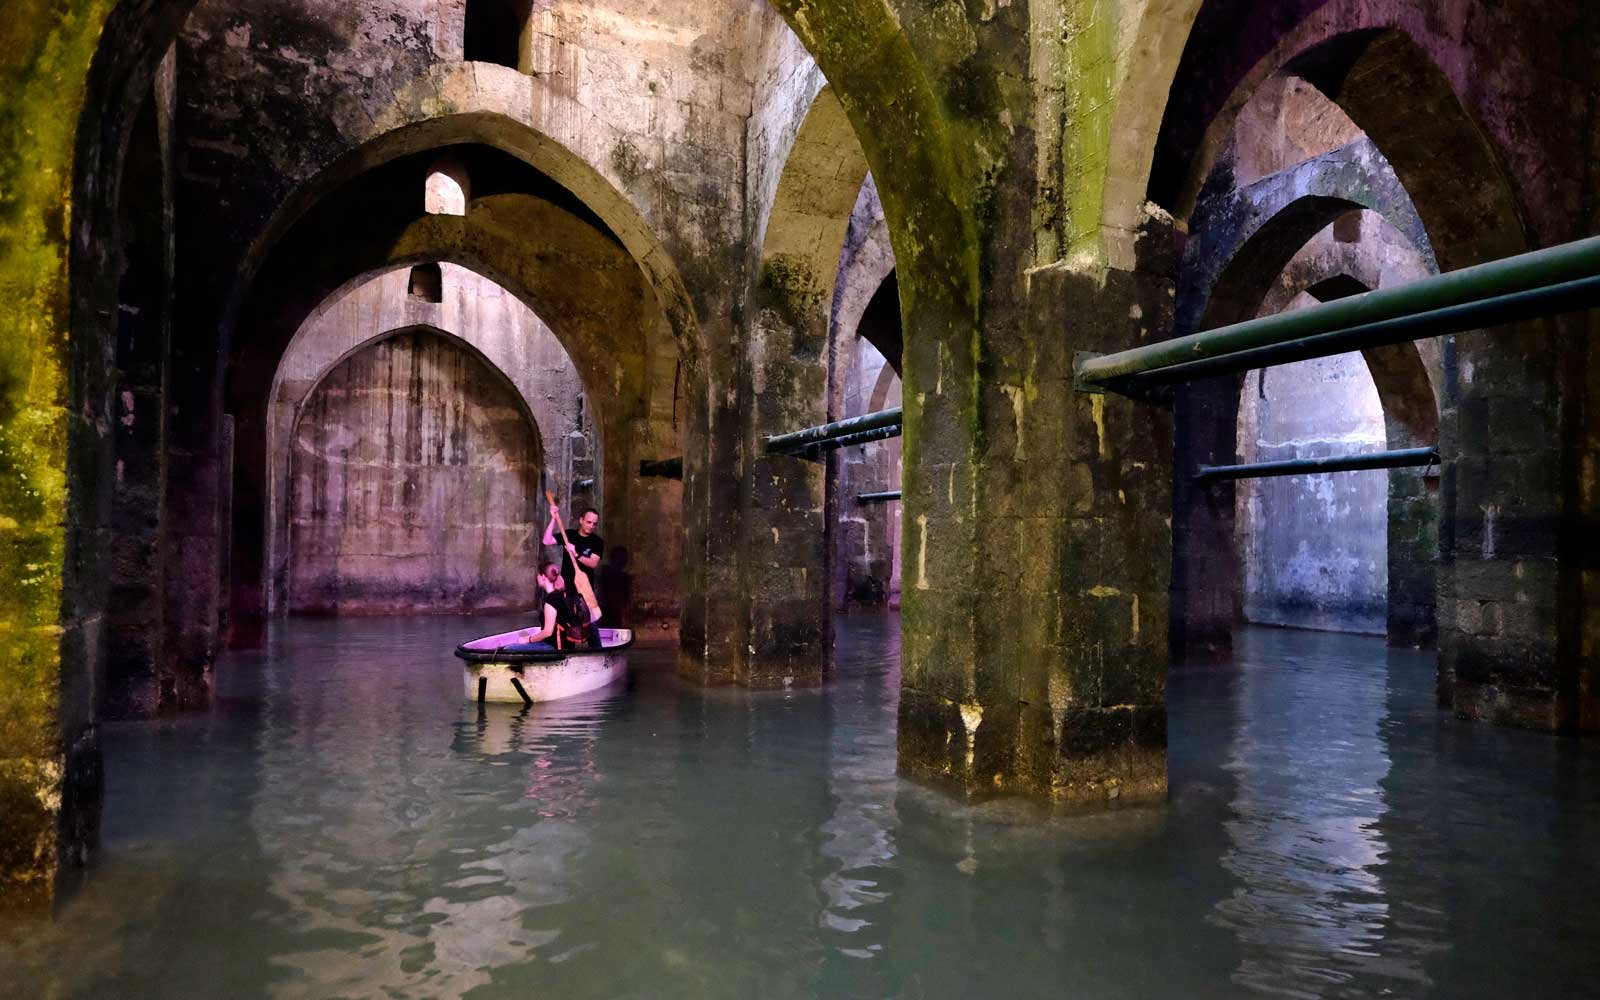 Visitors boating inside the Pool of Arches also known as St. Helen's pool an underground water cictern built in 789 AD in the city of Ramle or Ramla in Israel